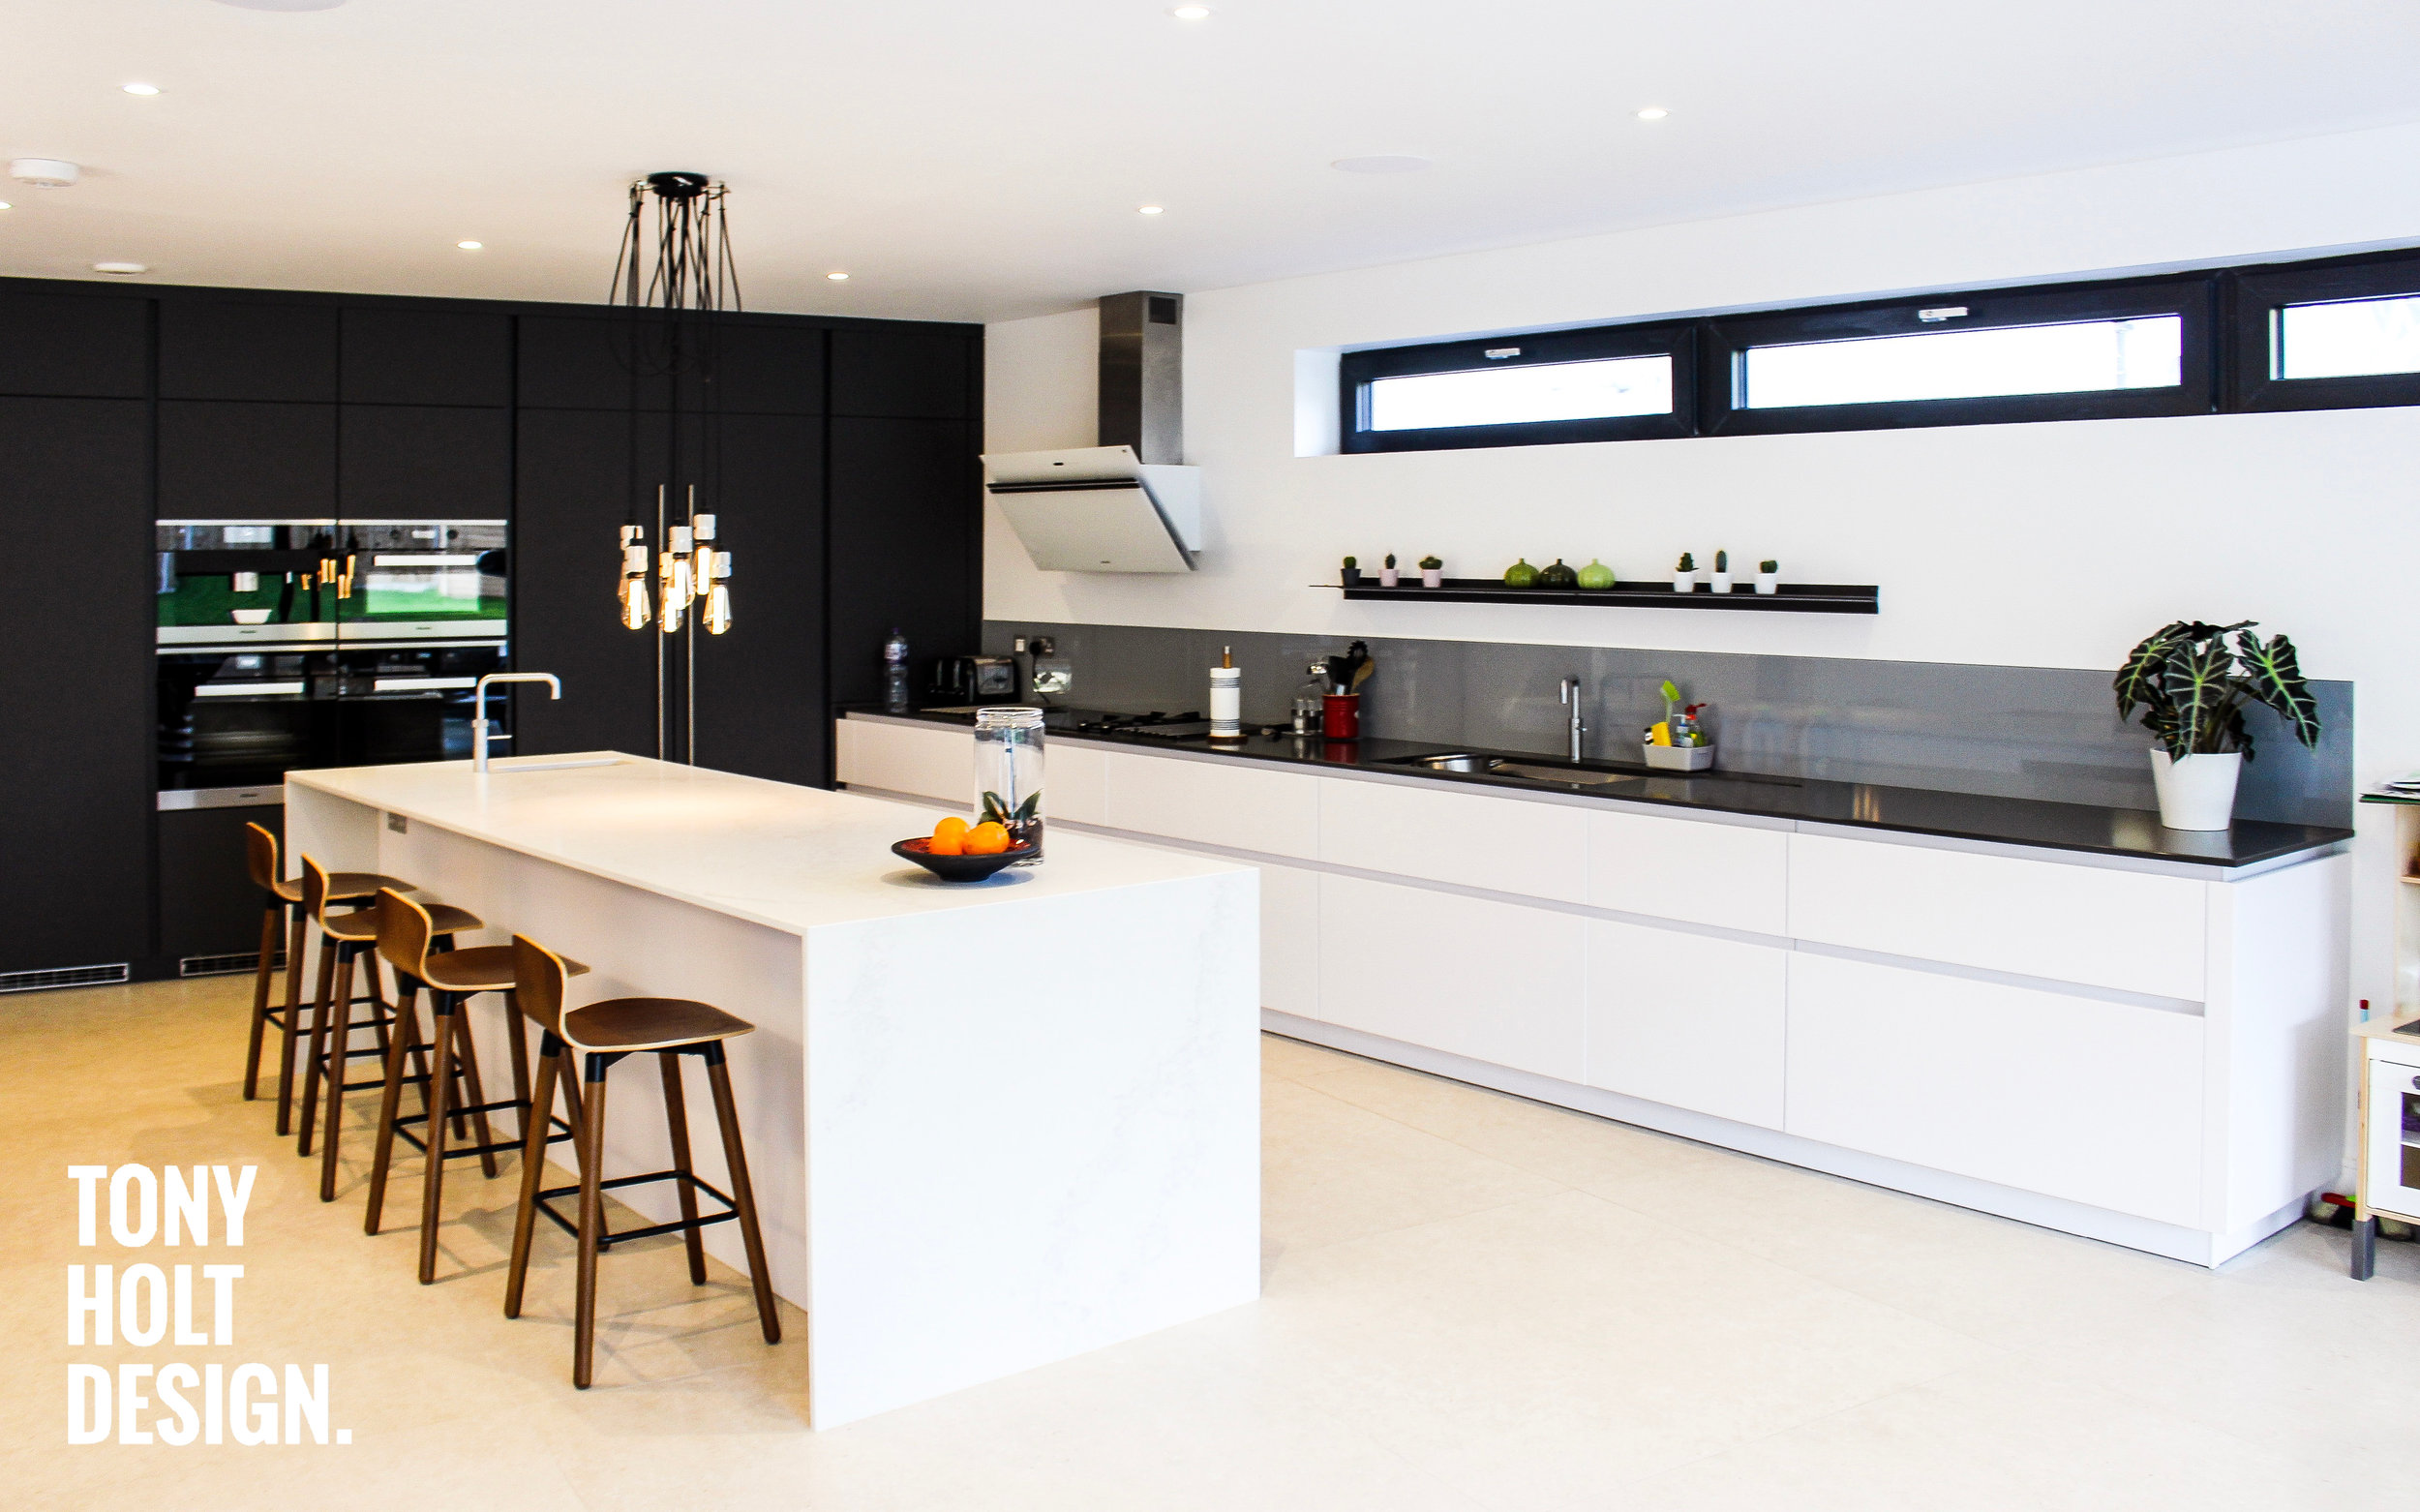 Tony Holt Design_Self Build_New Build_Interior_01_WEB6.jpg